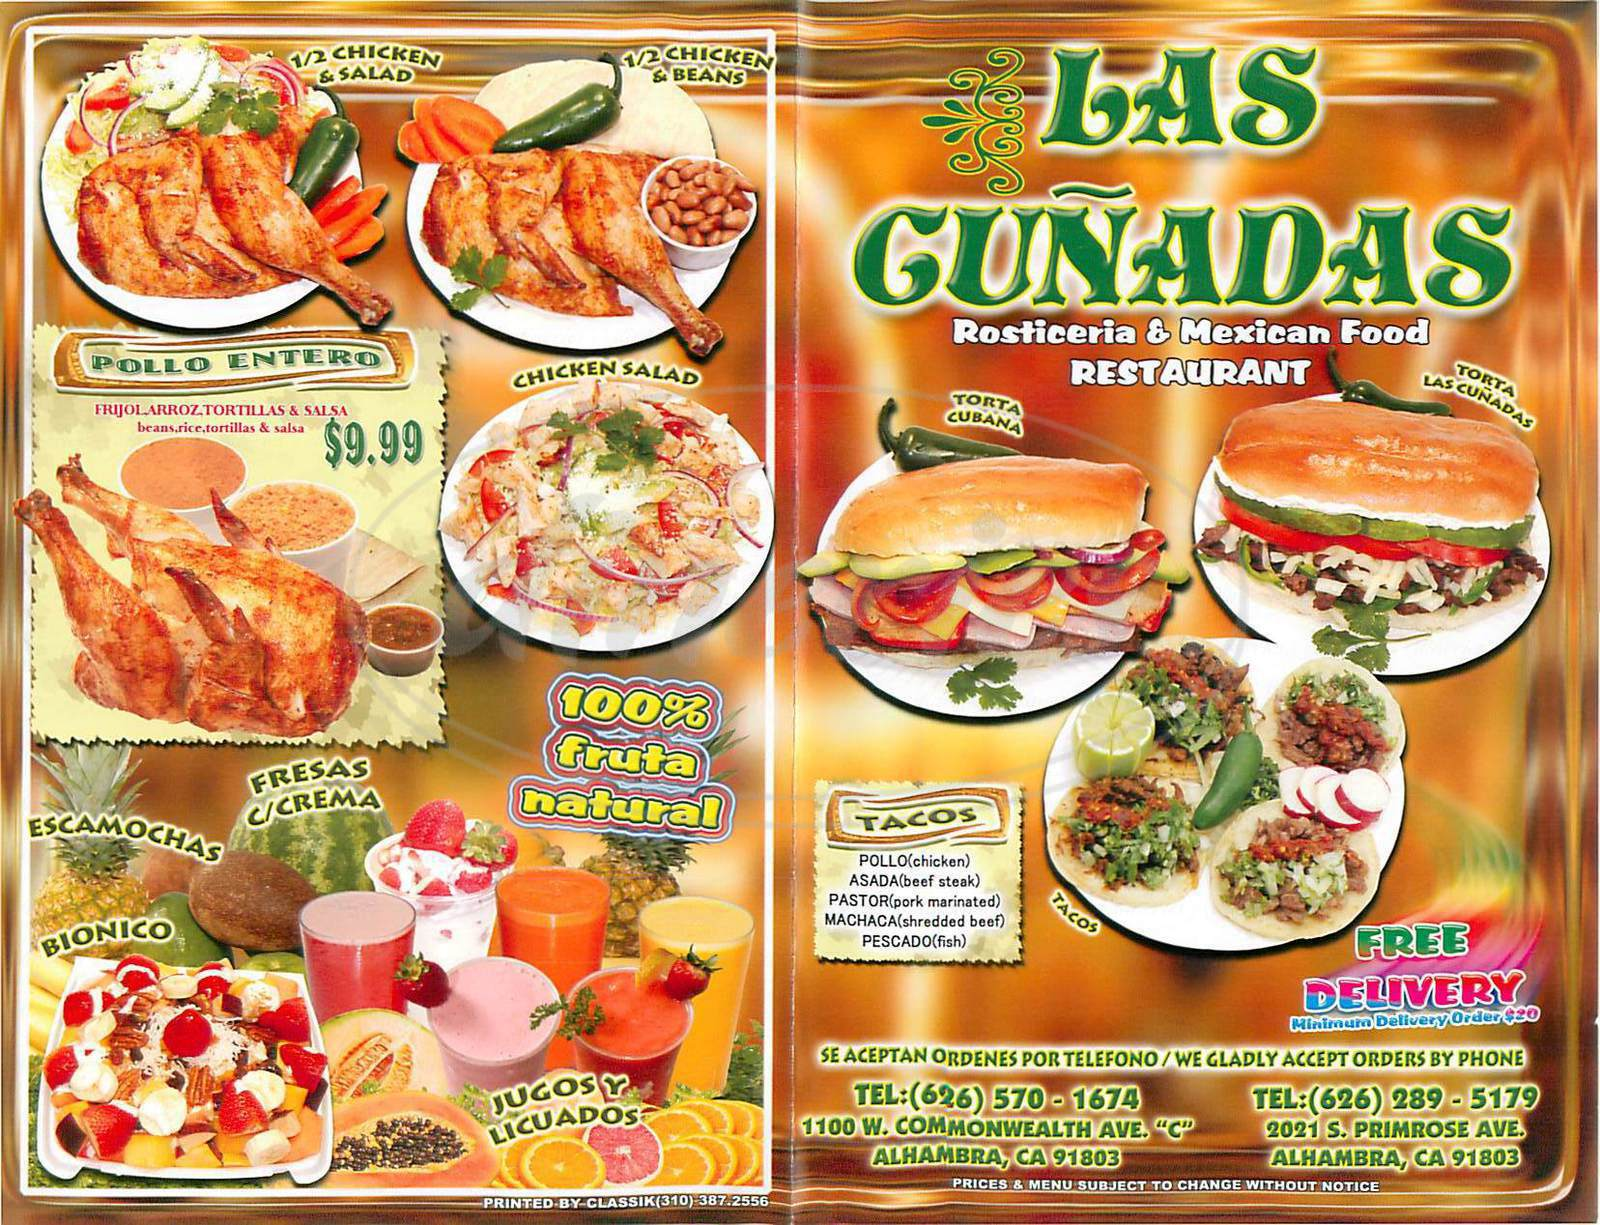 menu for Las Cunadas Restaurant